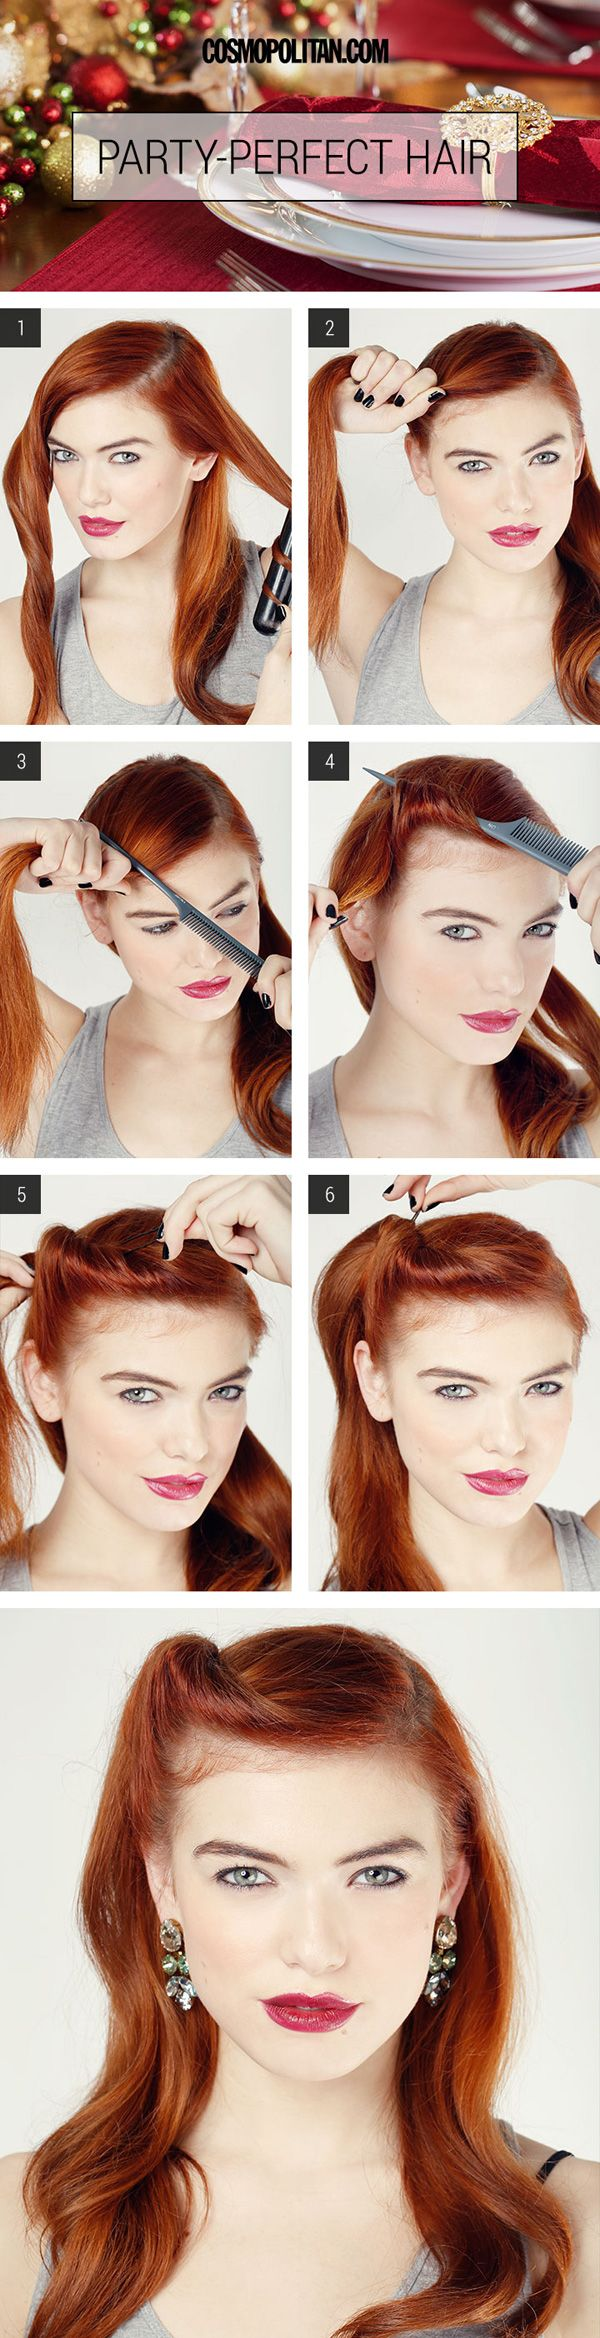 Hair How-To: Glam Roll